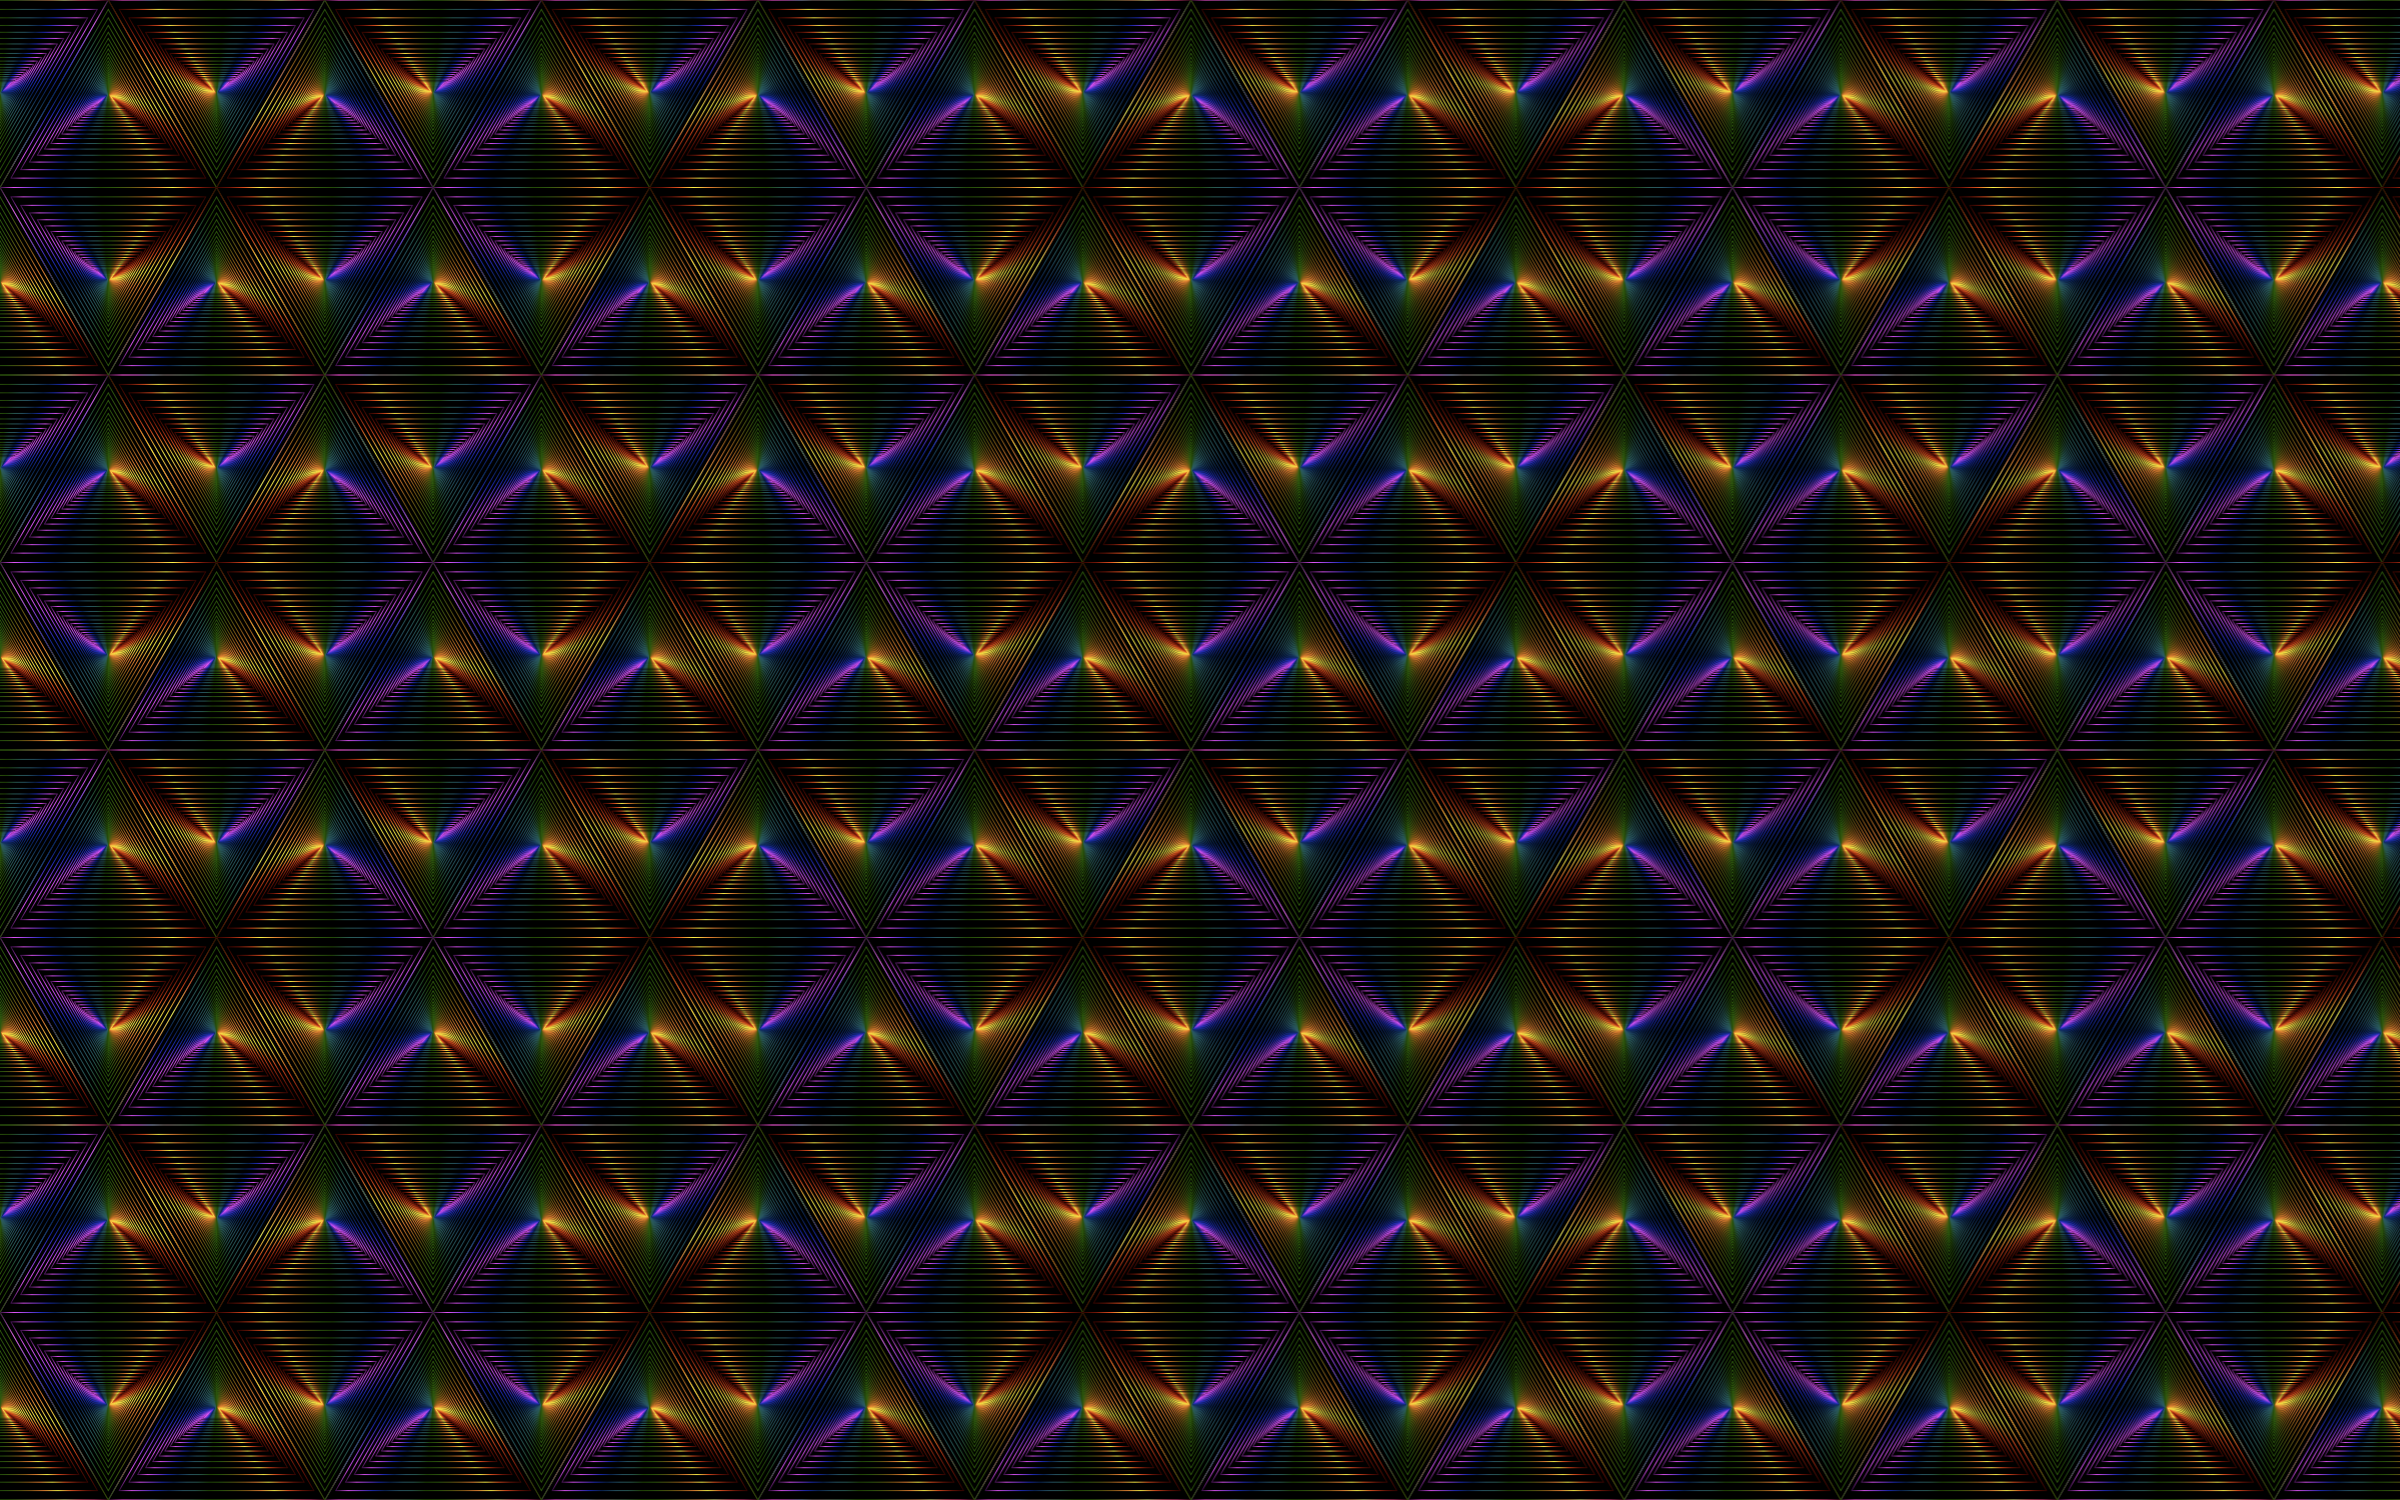 Prismatic Triangular Seamless Pattern II With Background by GDJ